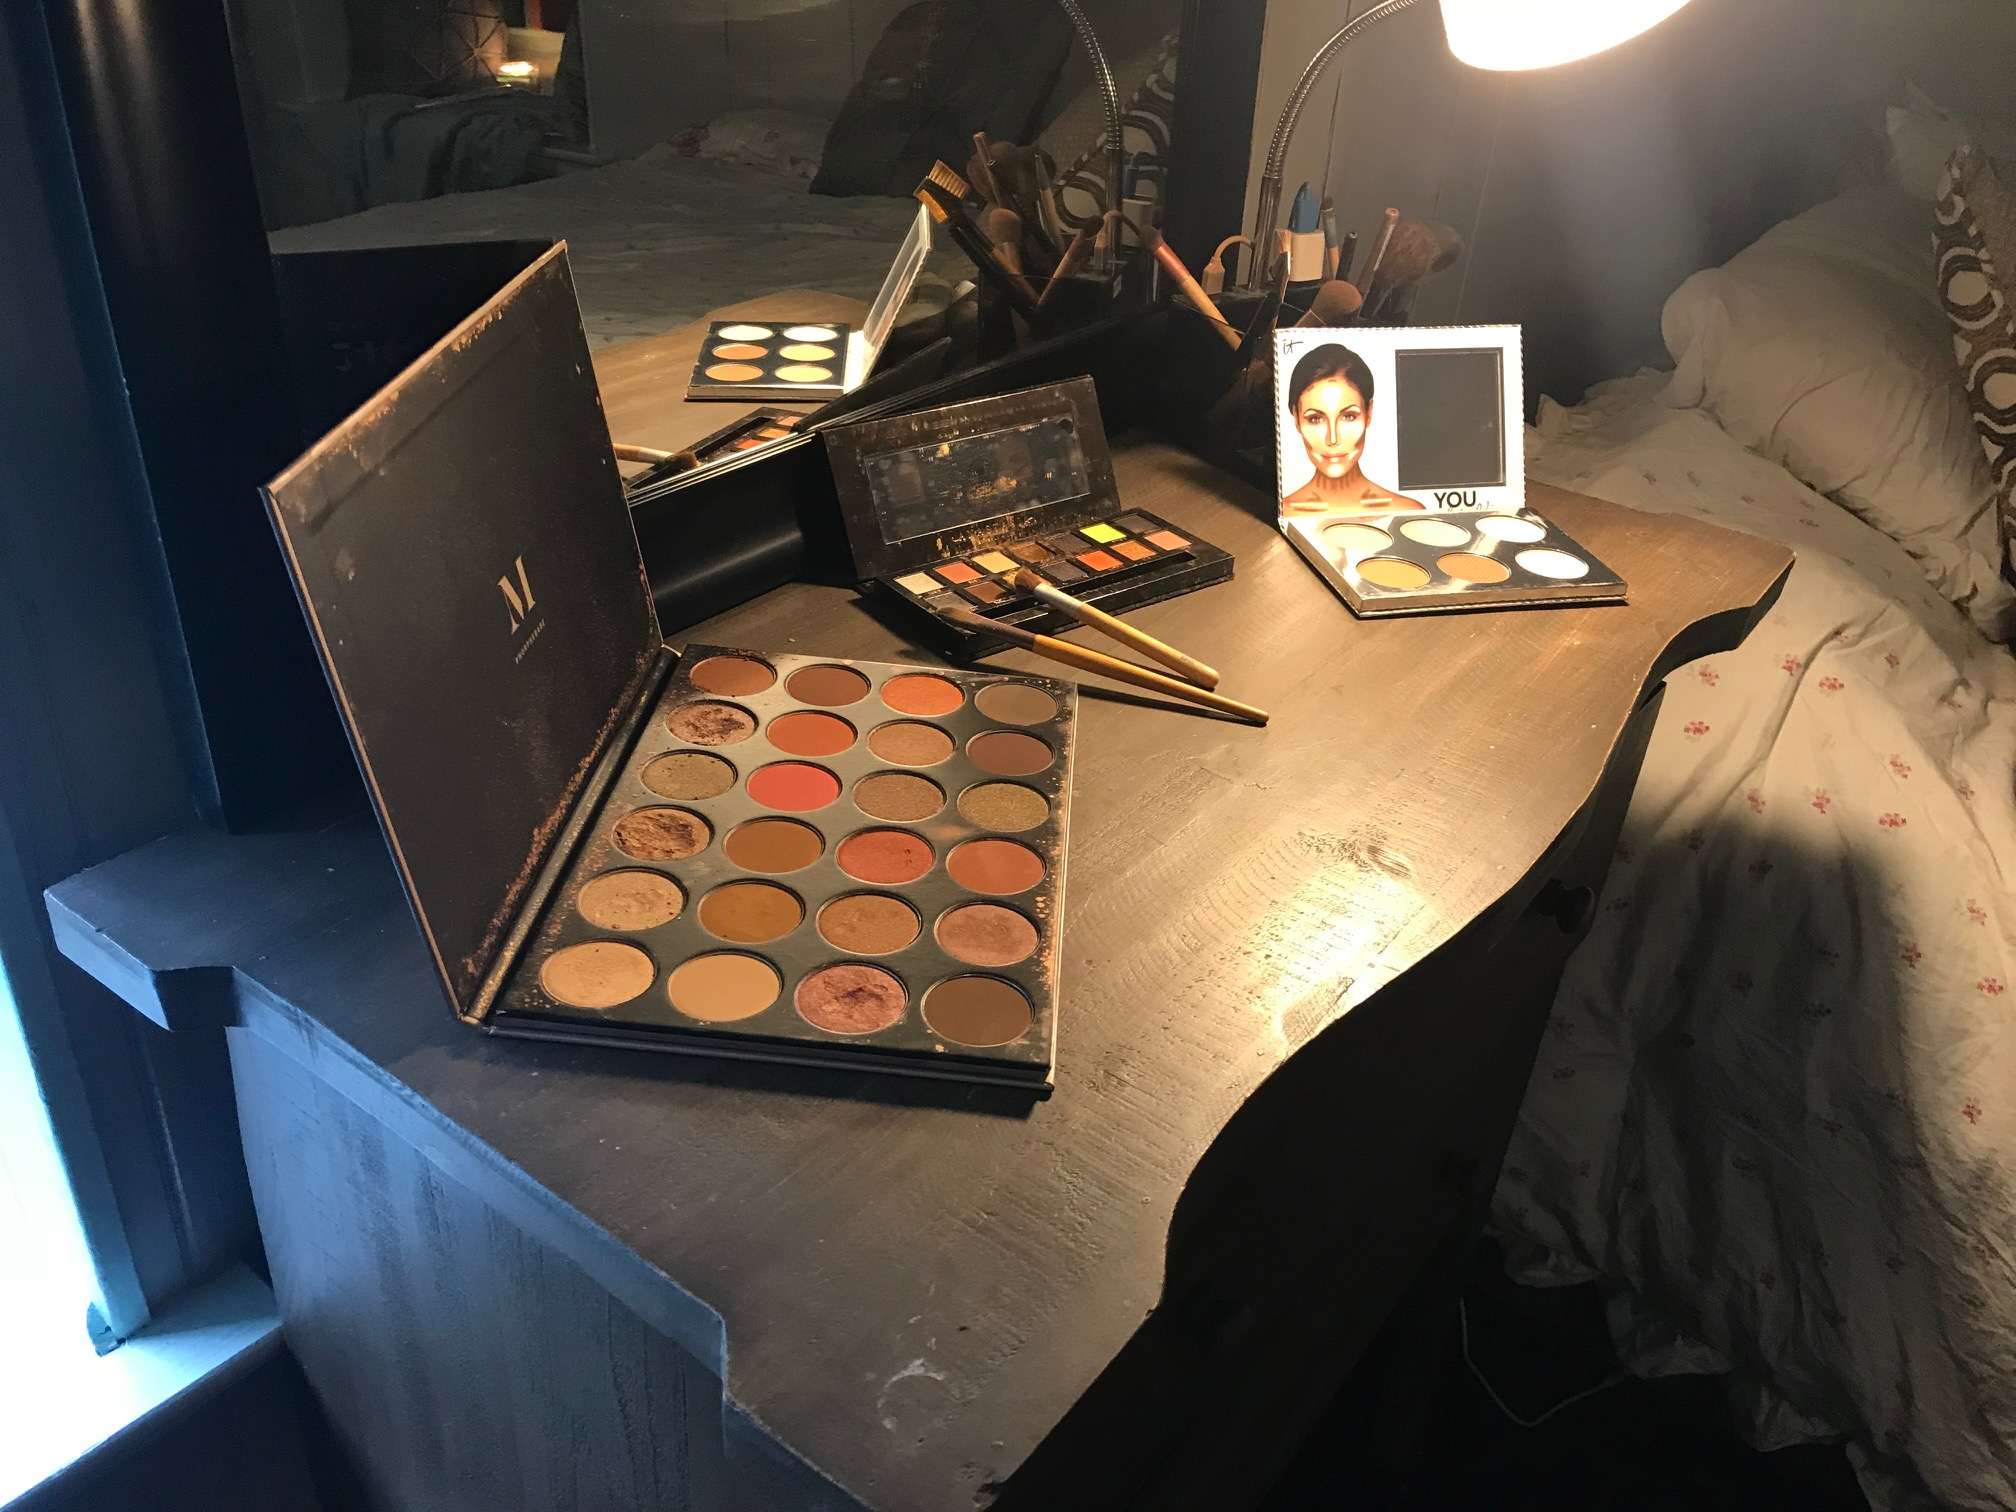 A forgotten mirror hidden in the corner and a lamp stored in the garage was just what this table needed in order to provide the perfect makeup center!